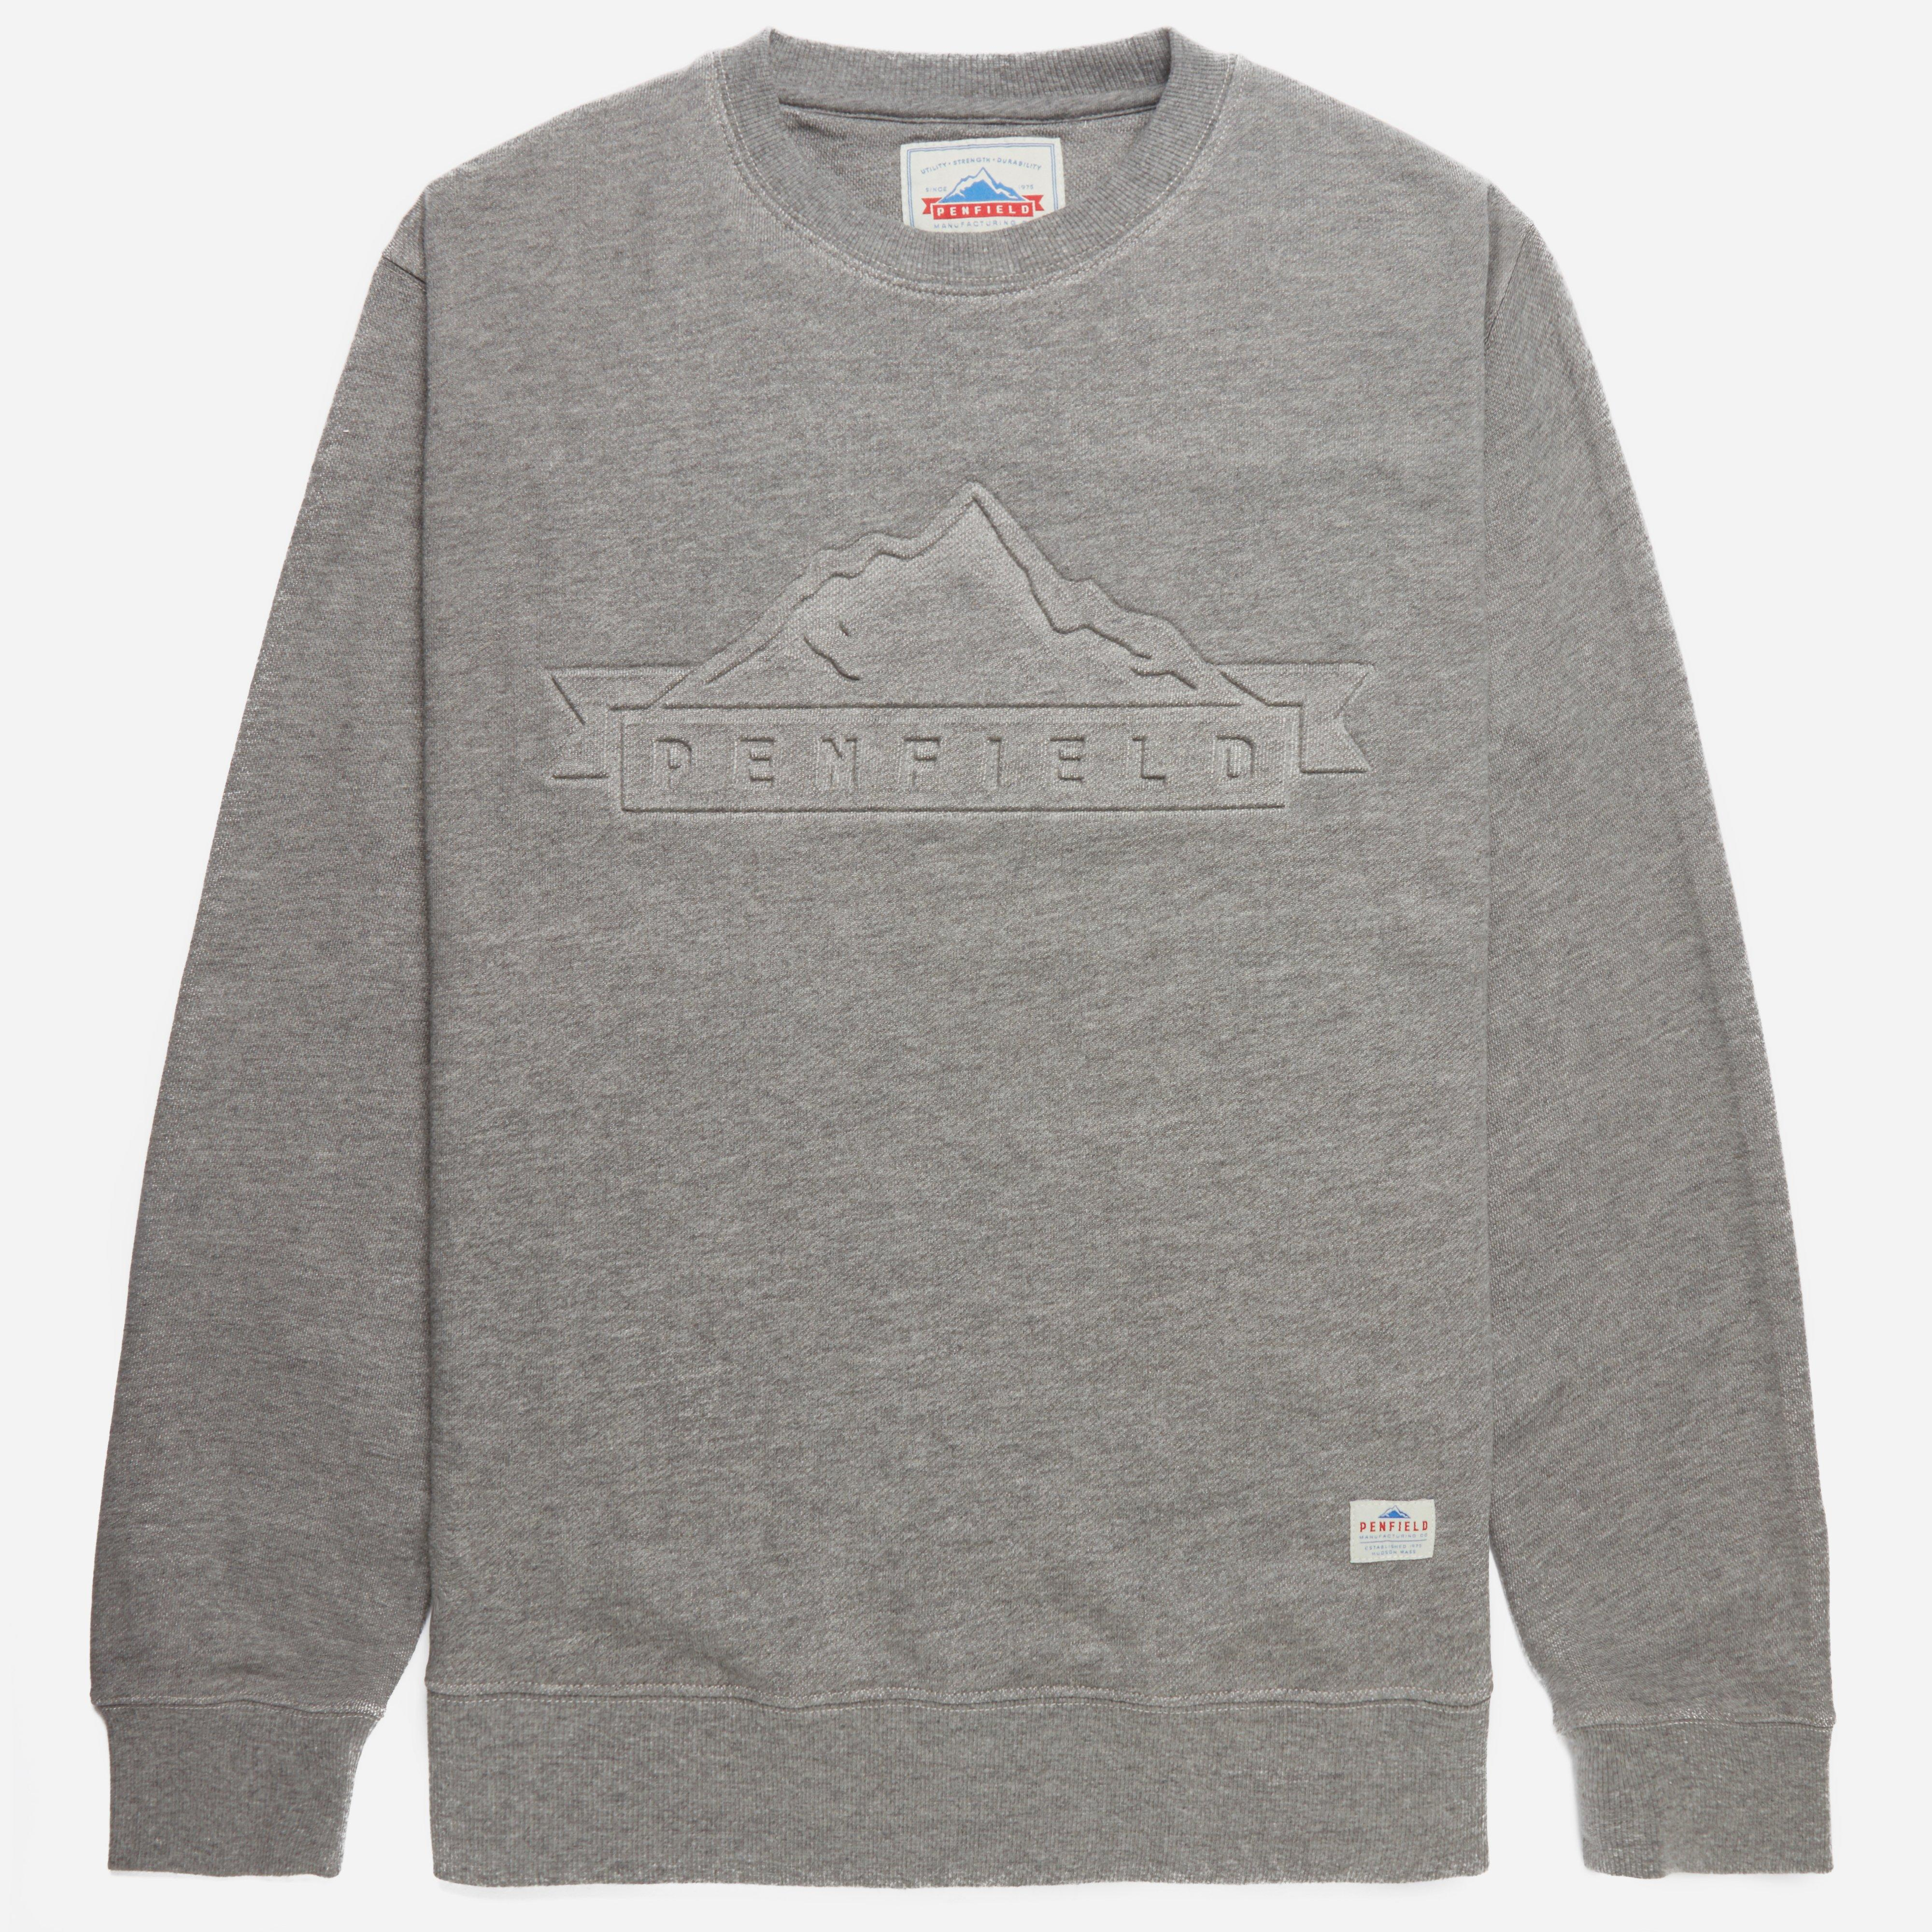 Penfield Farley Sweatshirt